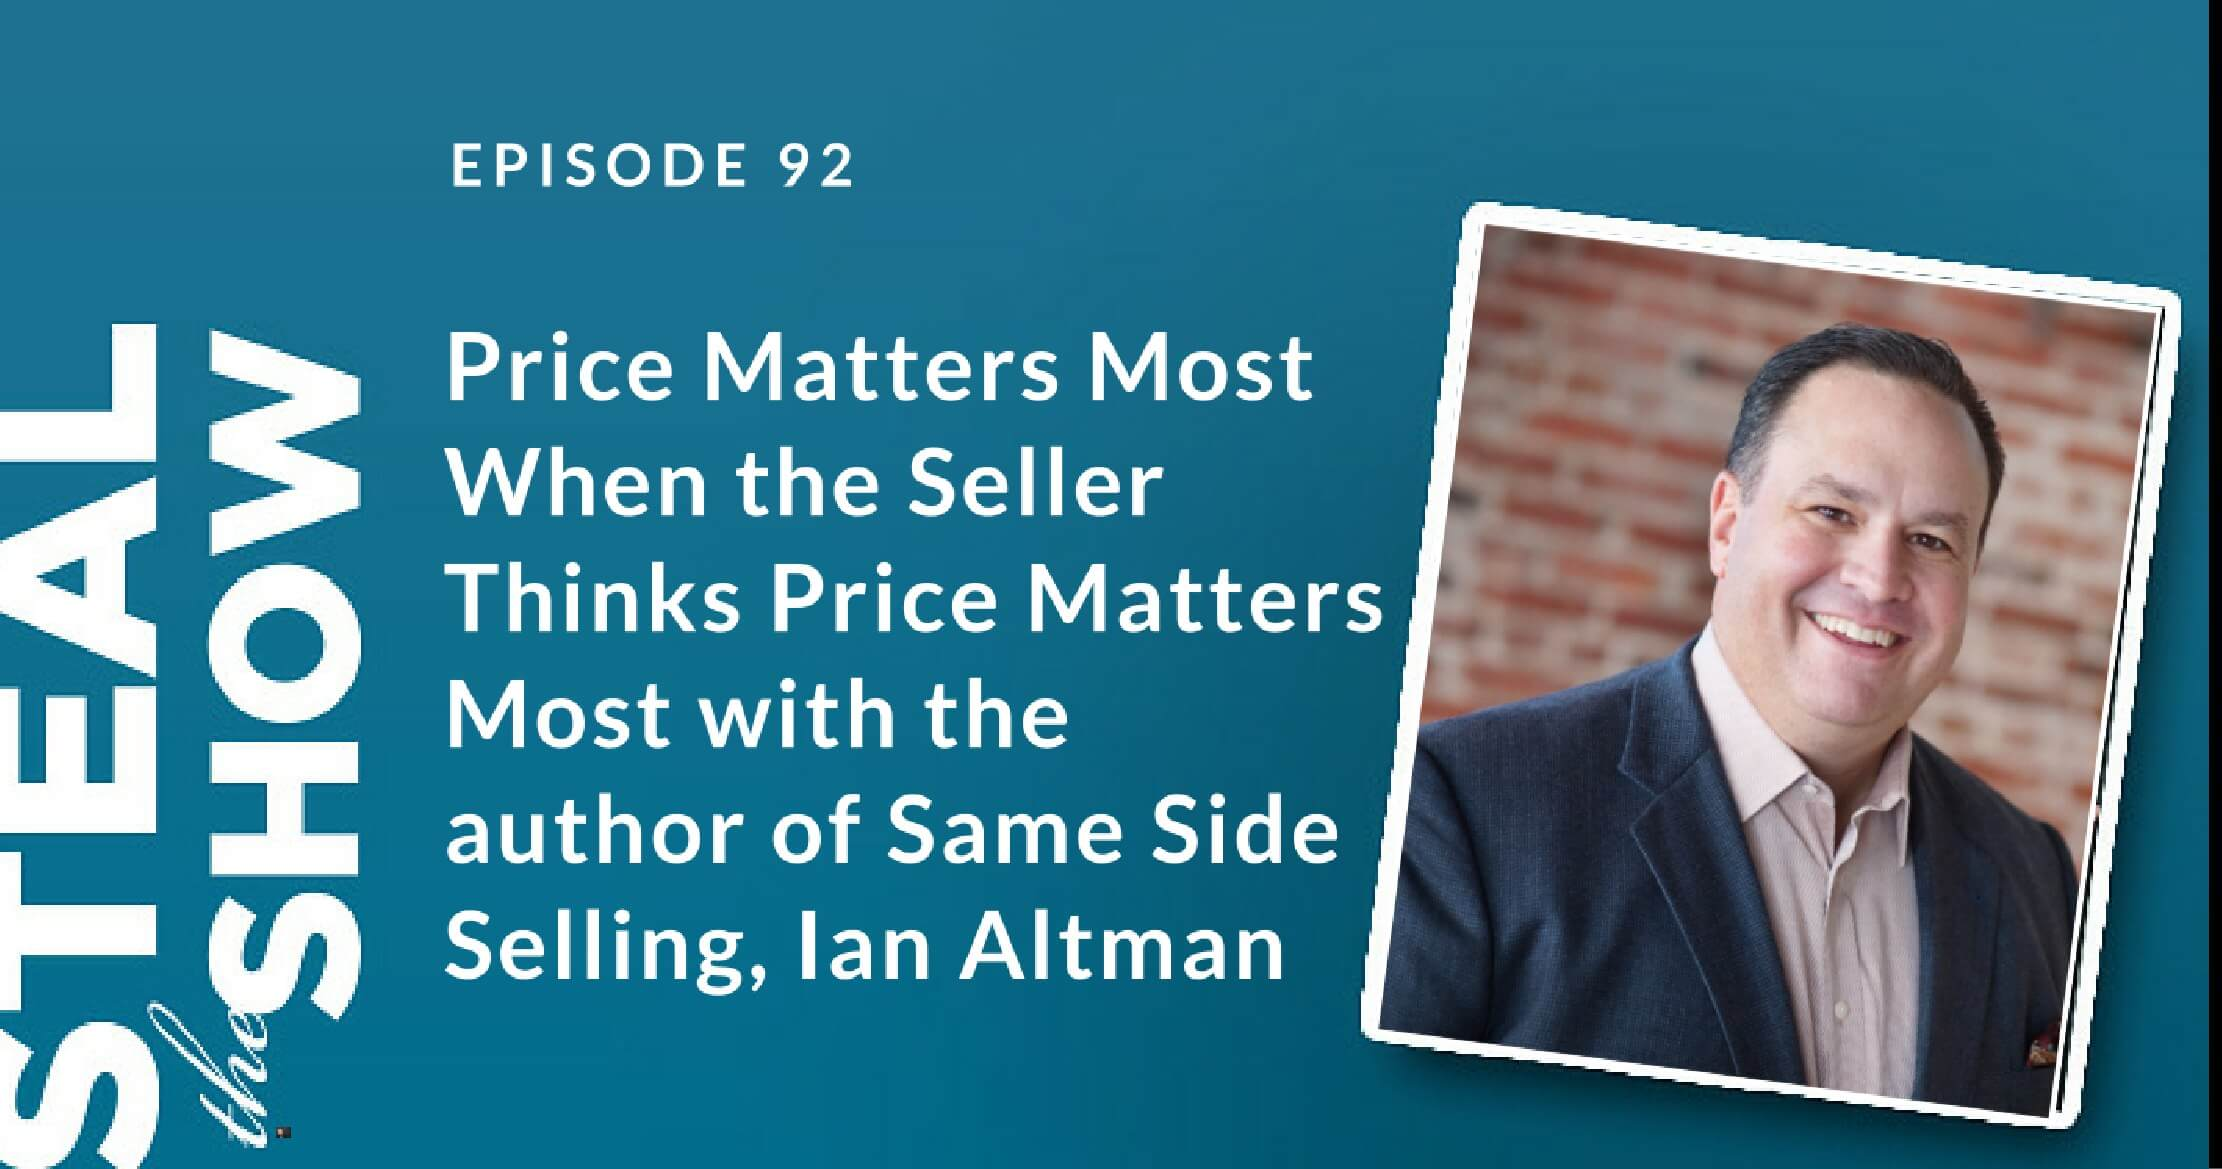 092 Price Matters Most When the Seller Thinks Price Matters Most with the author of Same Side Selling, Ian Altman